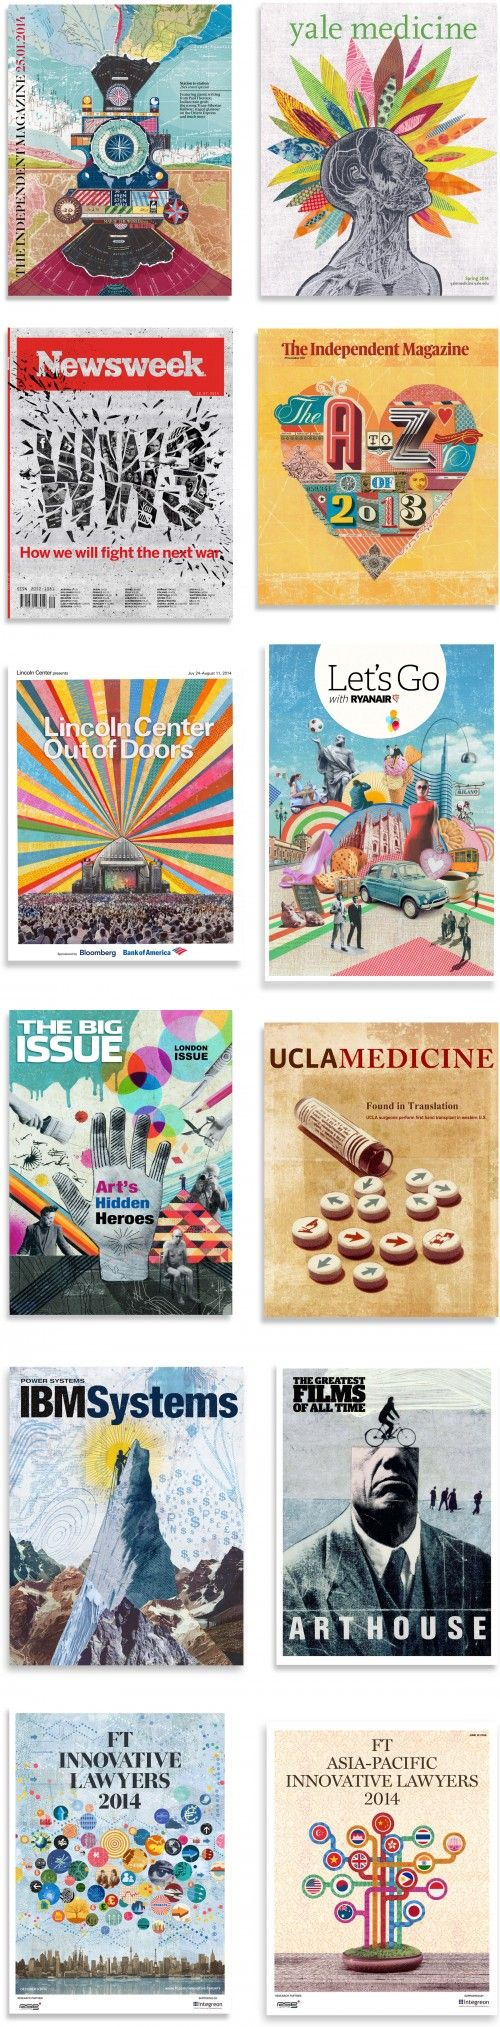 Color art magazine - Selection Of Magazine Covers From The Past 18 Months Or So